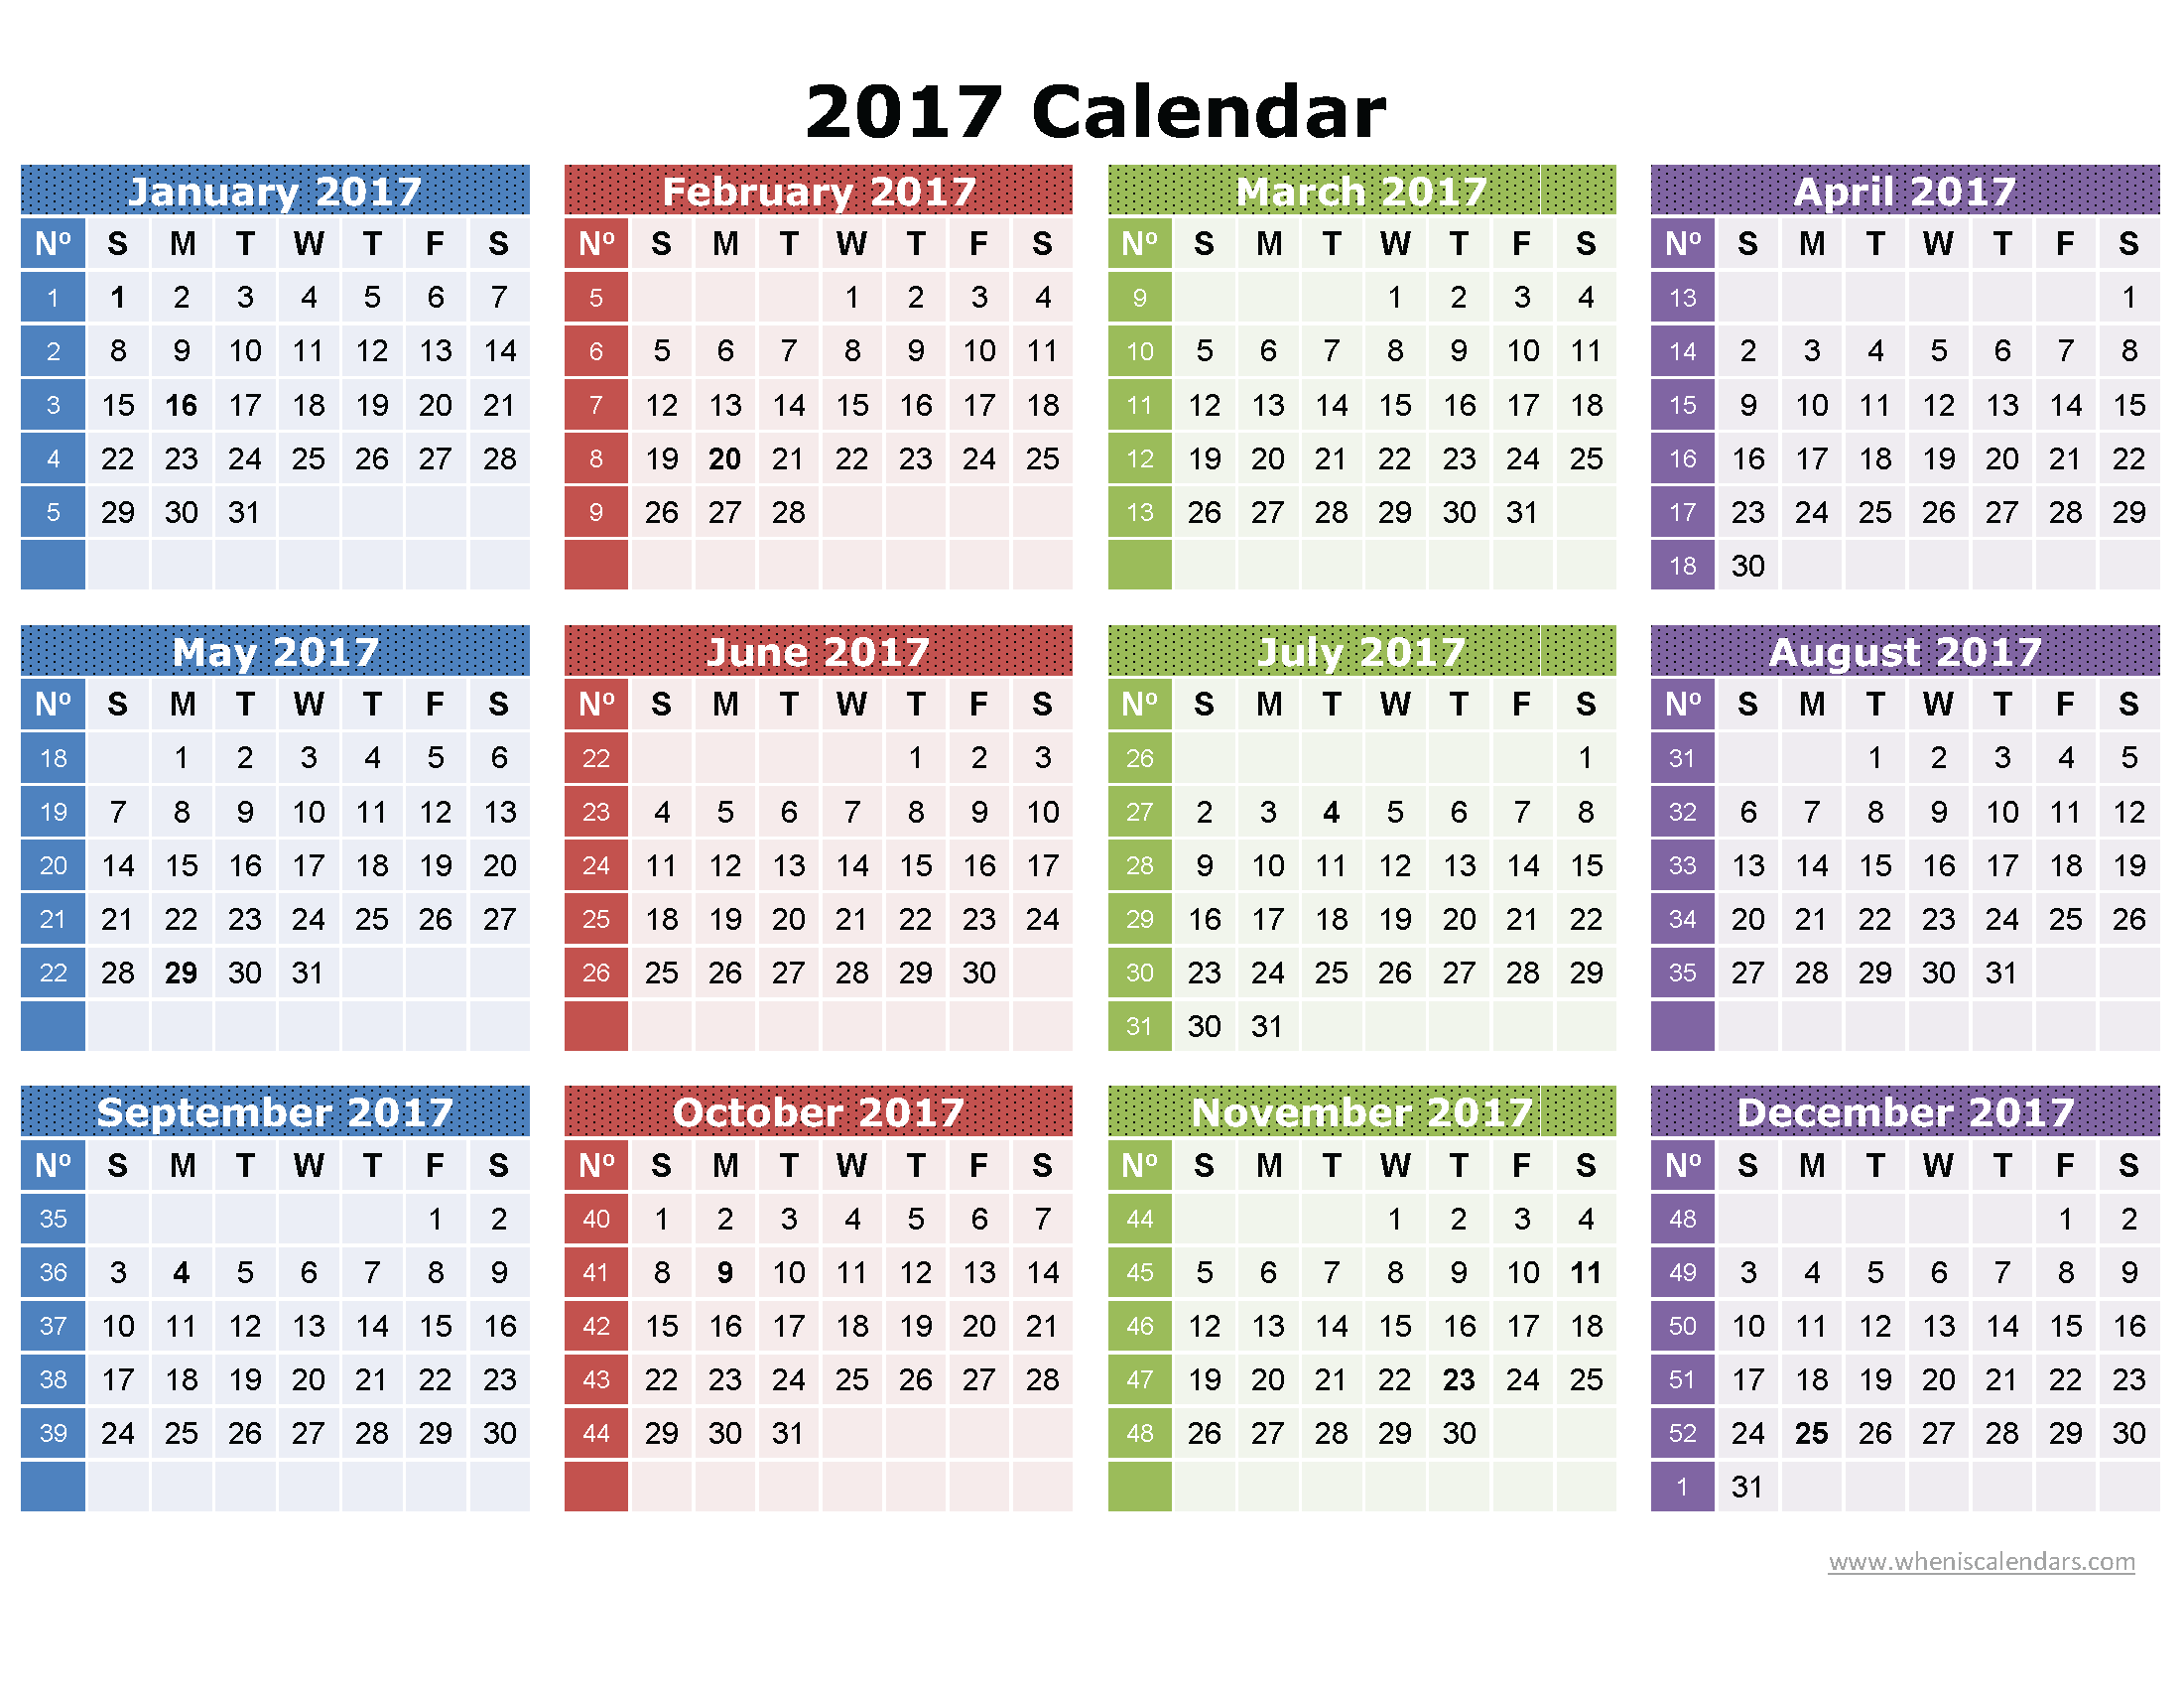 Printable 2017 Calendar on one page (vertical)